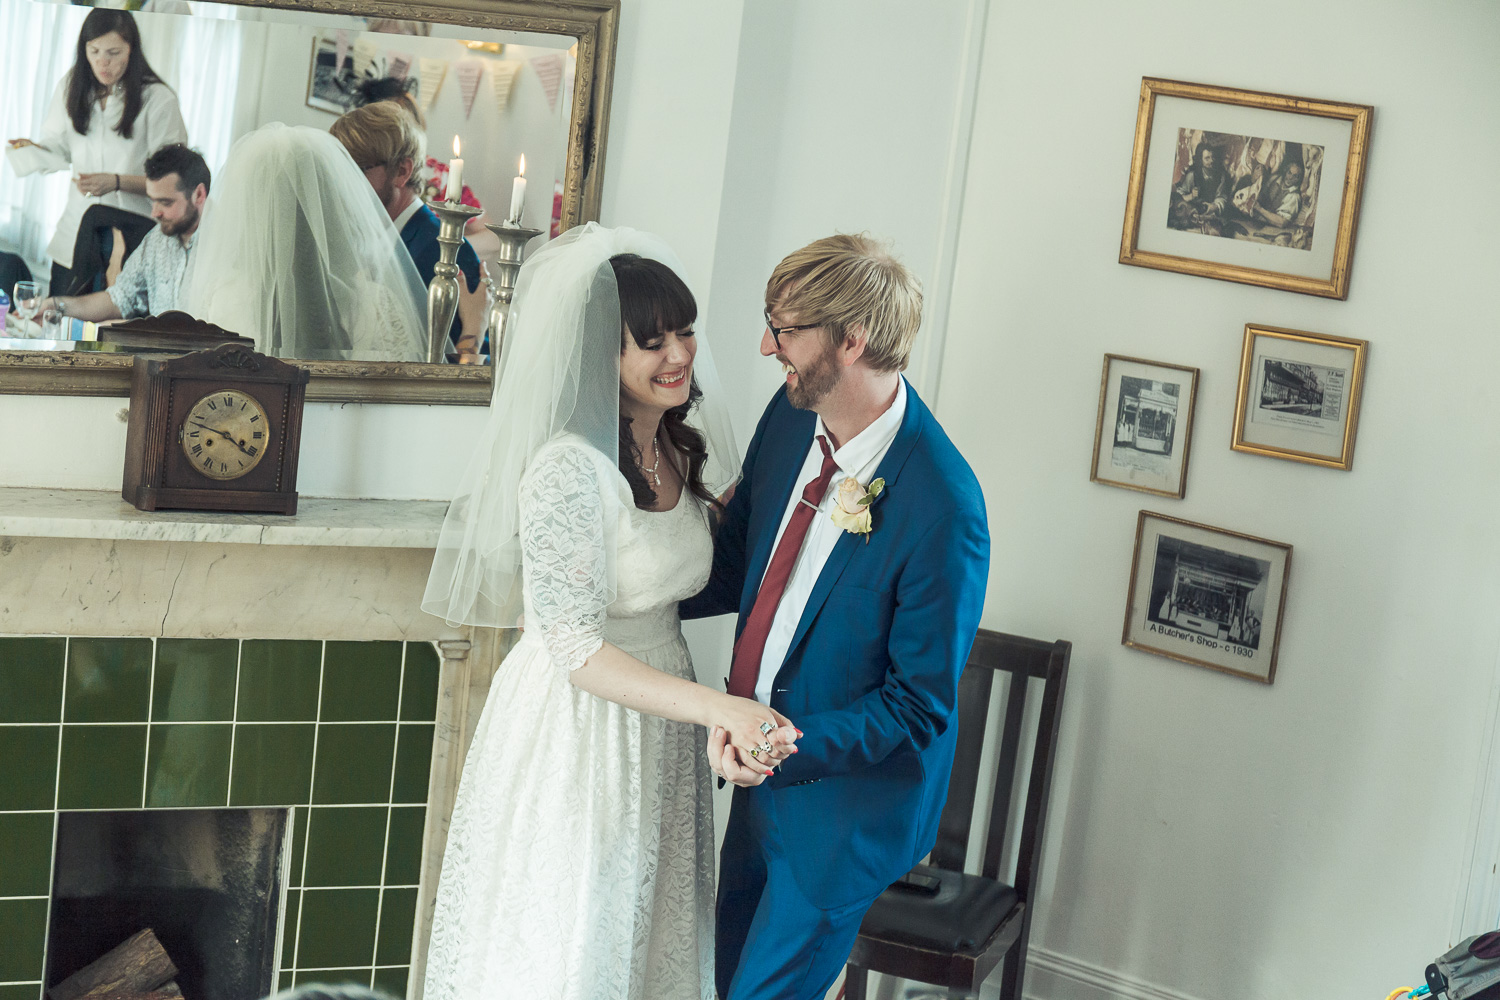 burgh-house-hampstead-north-london-wedding-0311.jpg